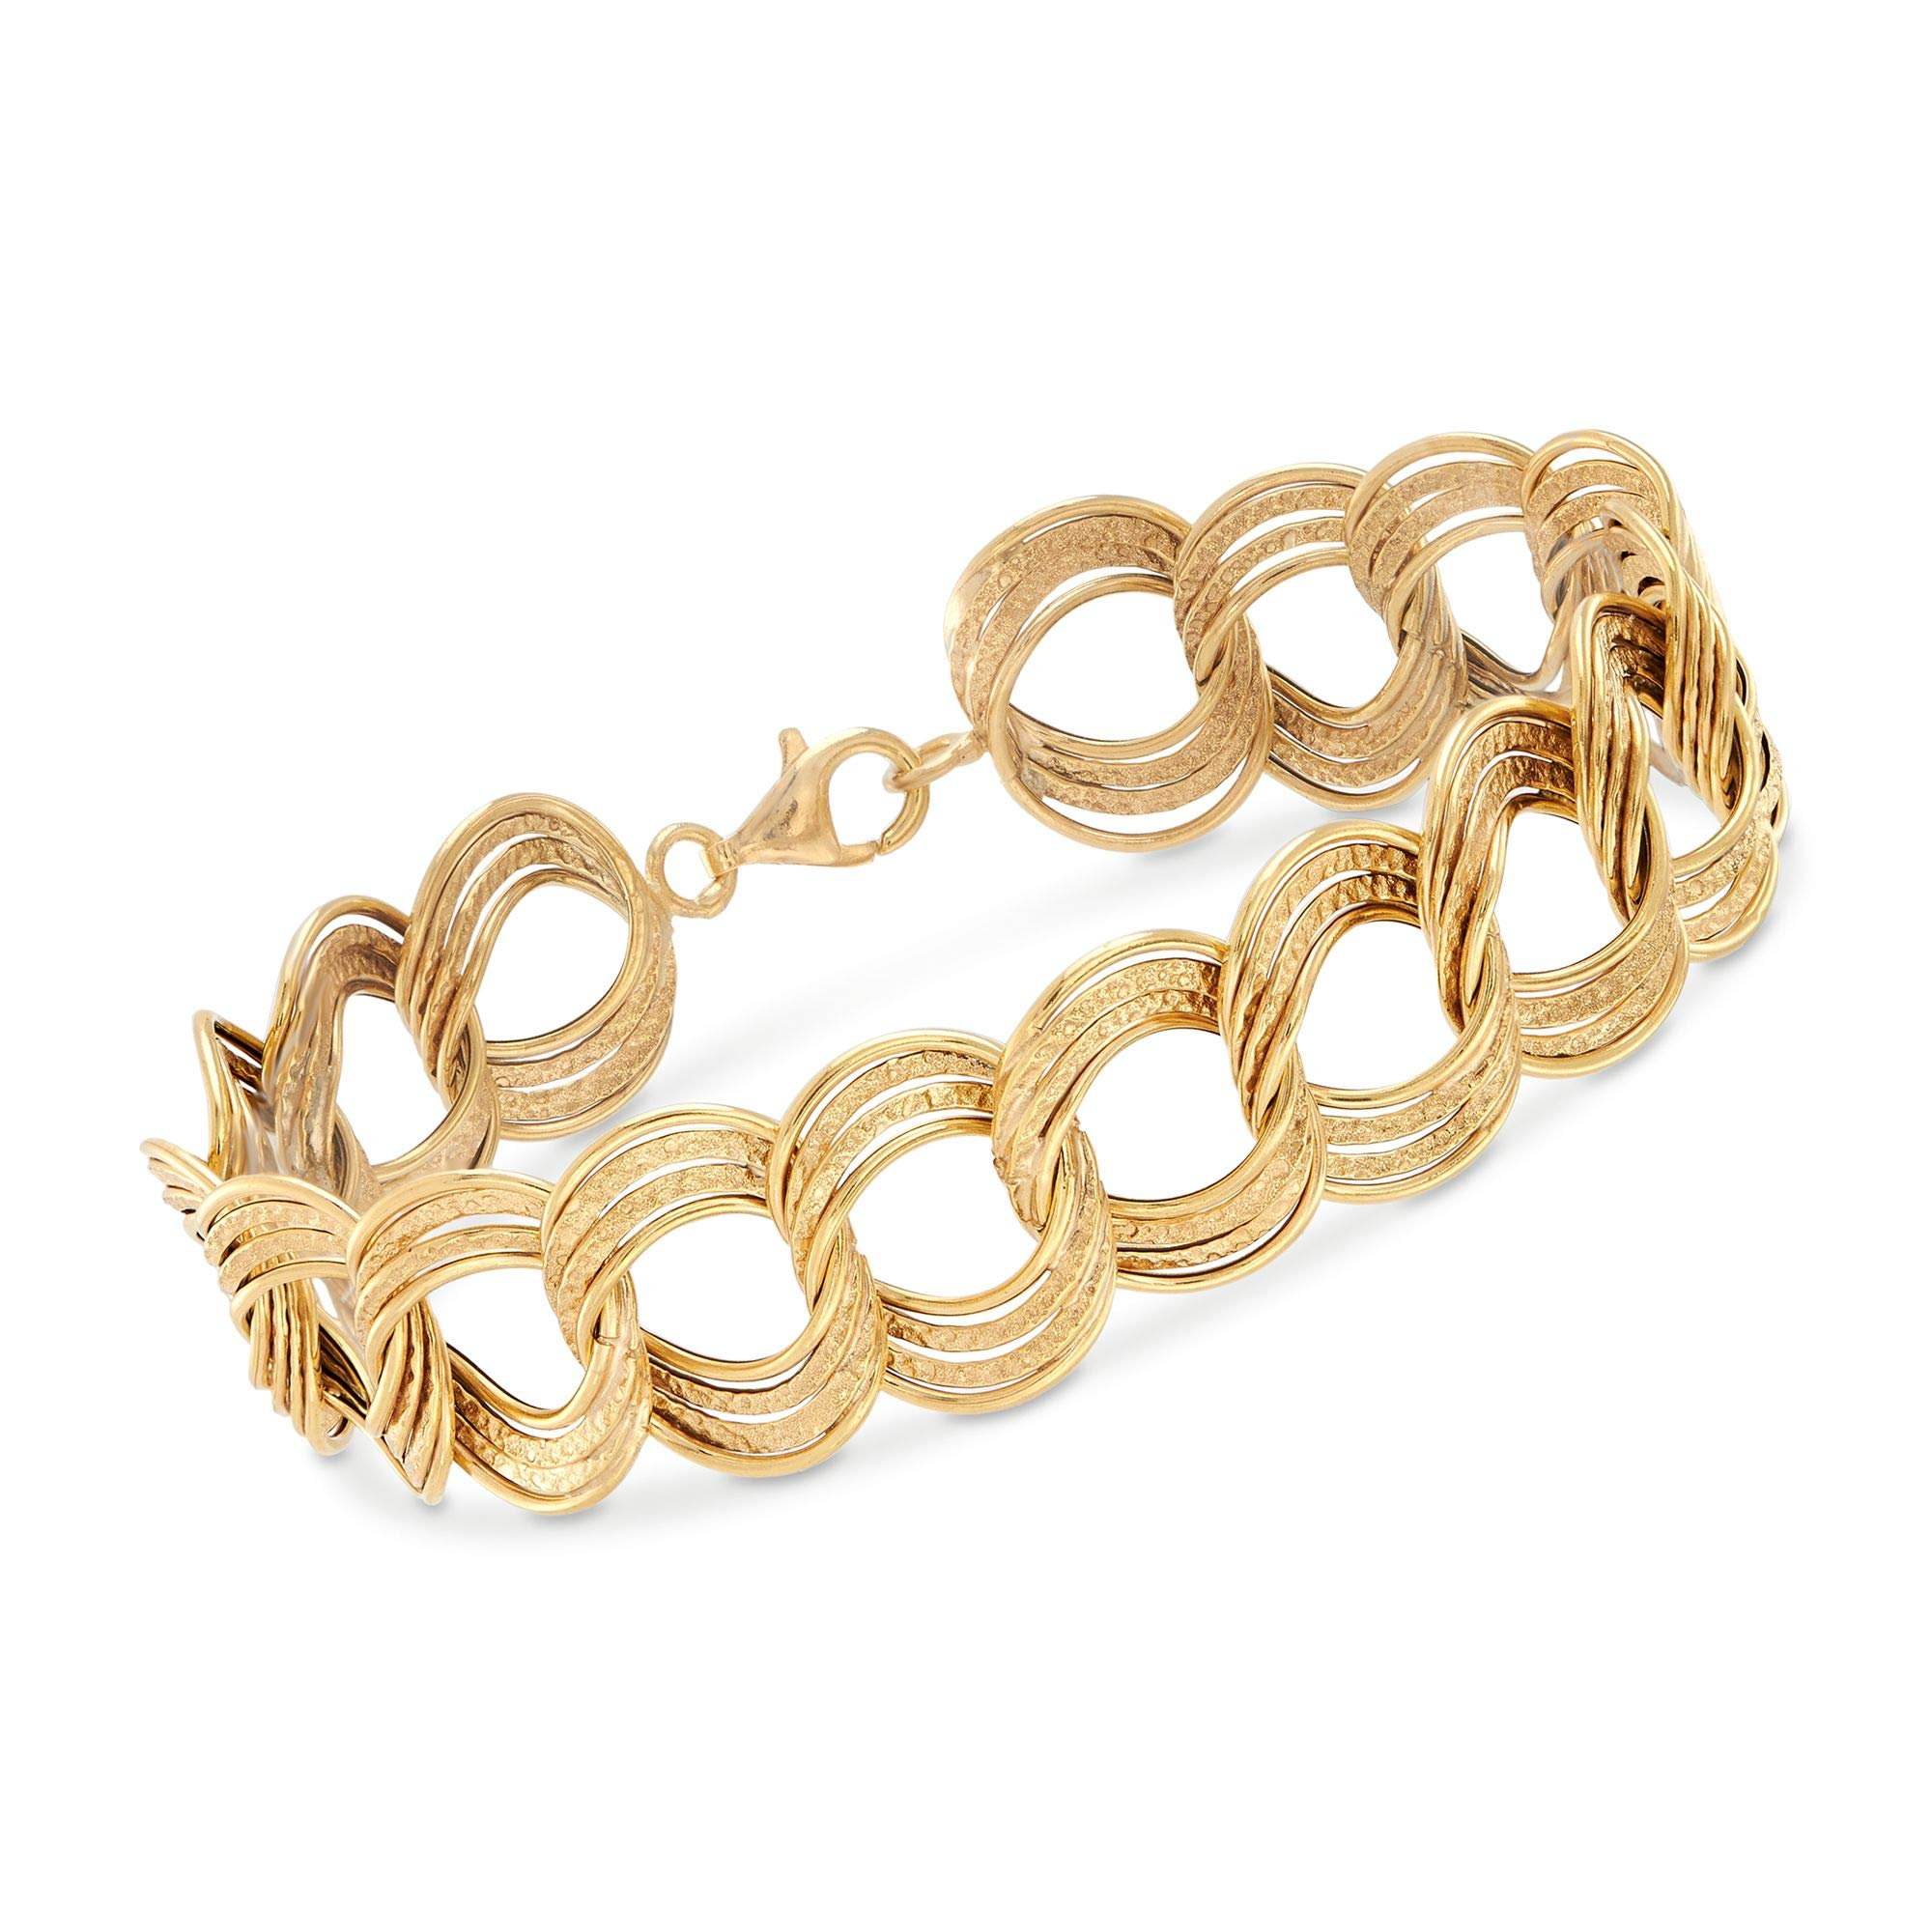 Ross-Simons Italian 14kt Yellow Gold Textured and Polished Circle-Link Bracelet